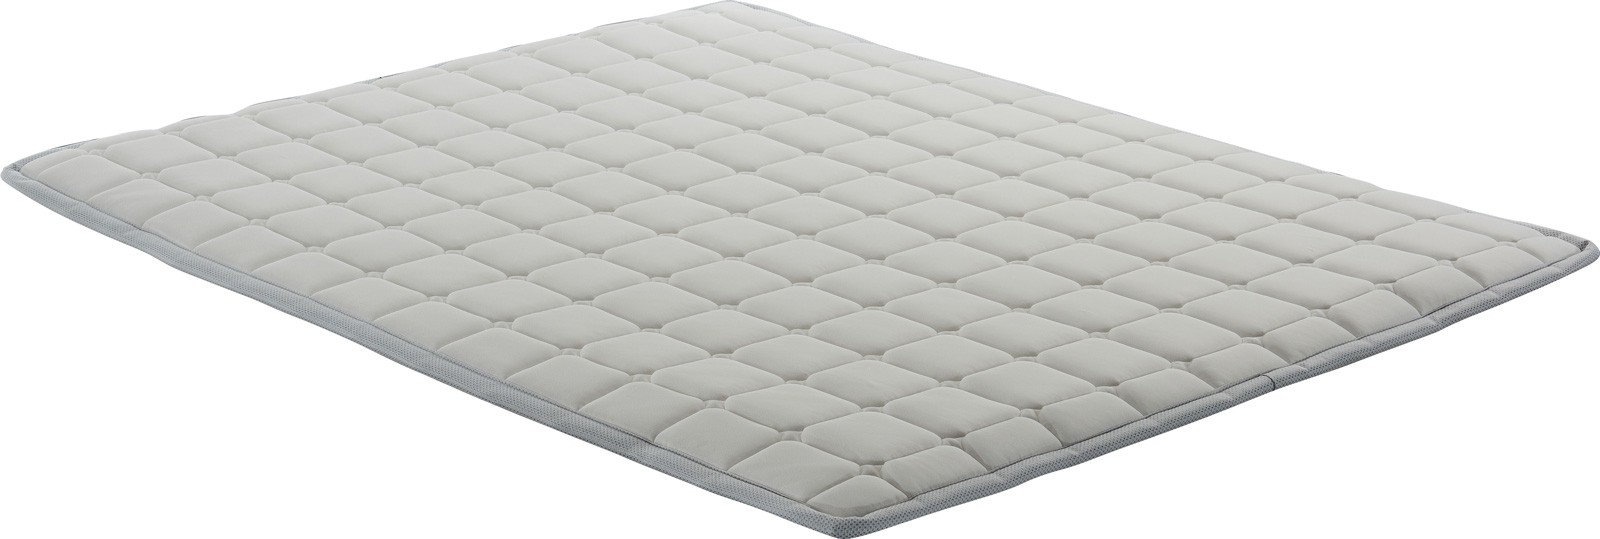 Topper Sleep Cover